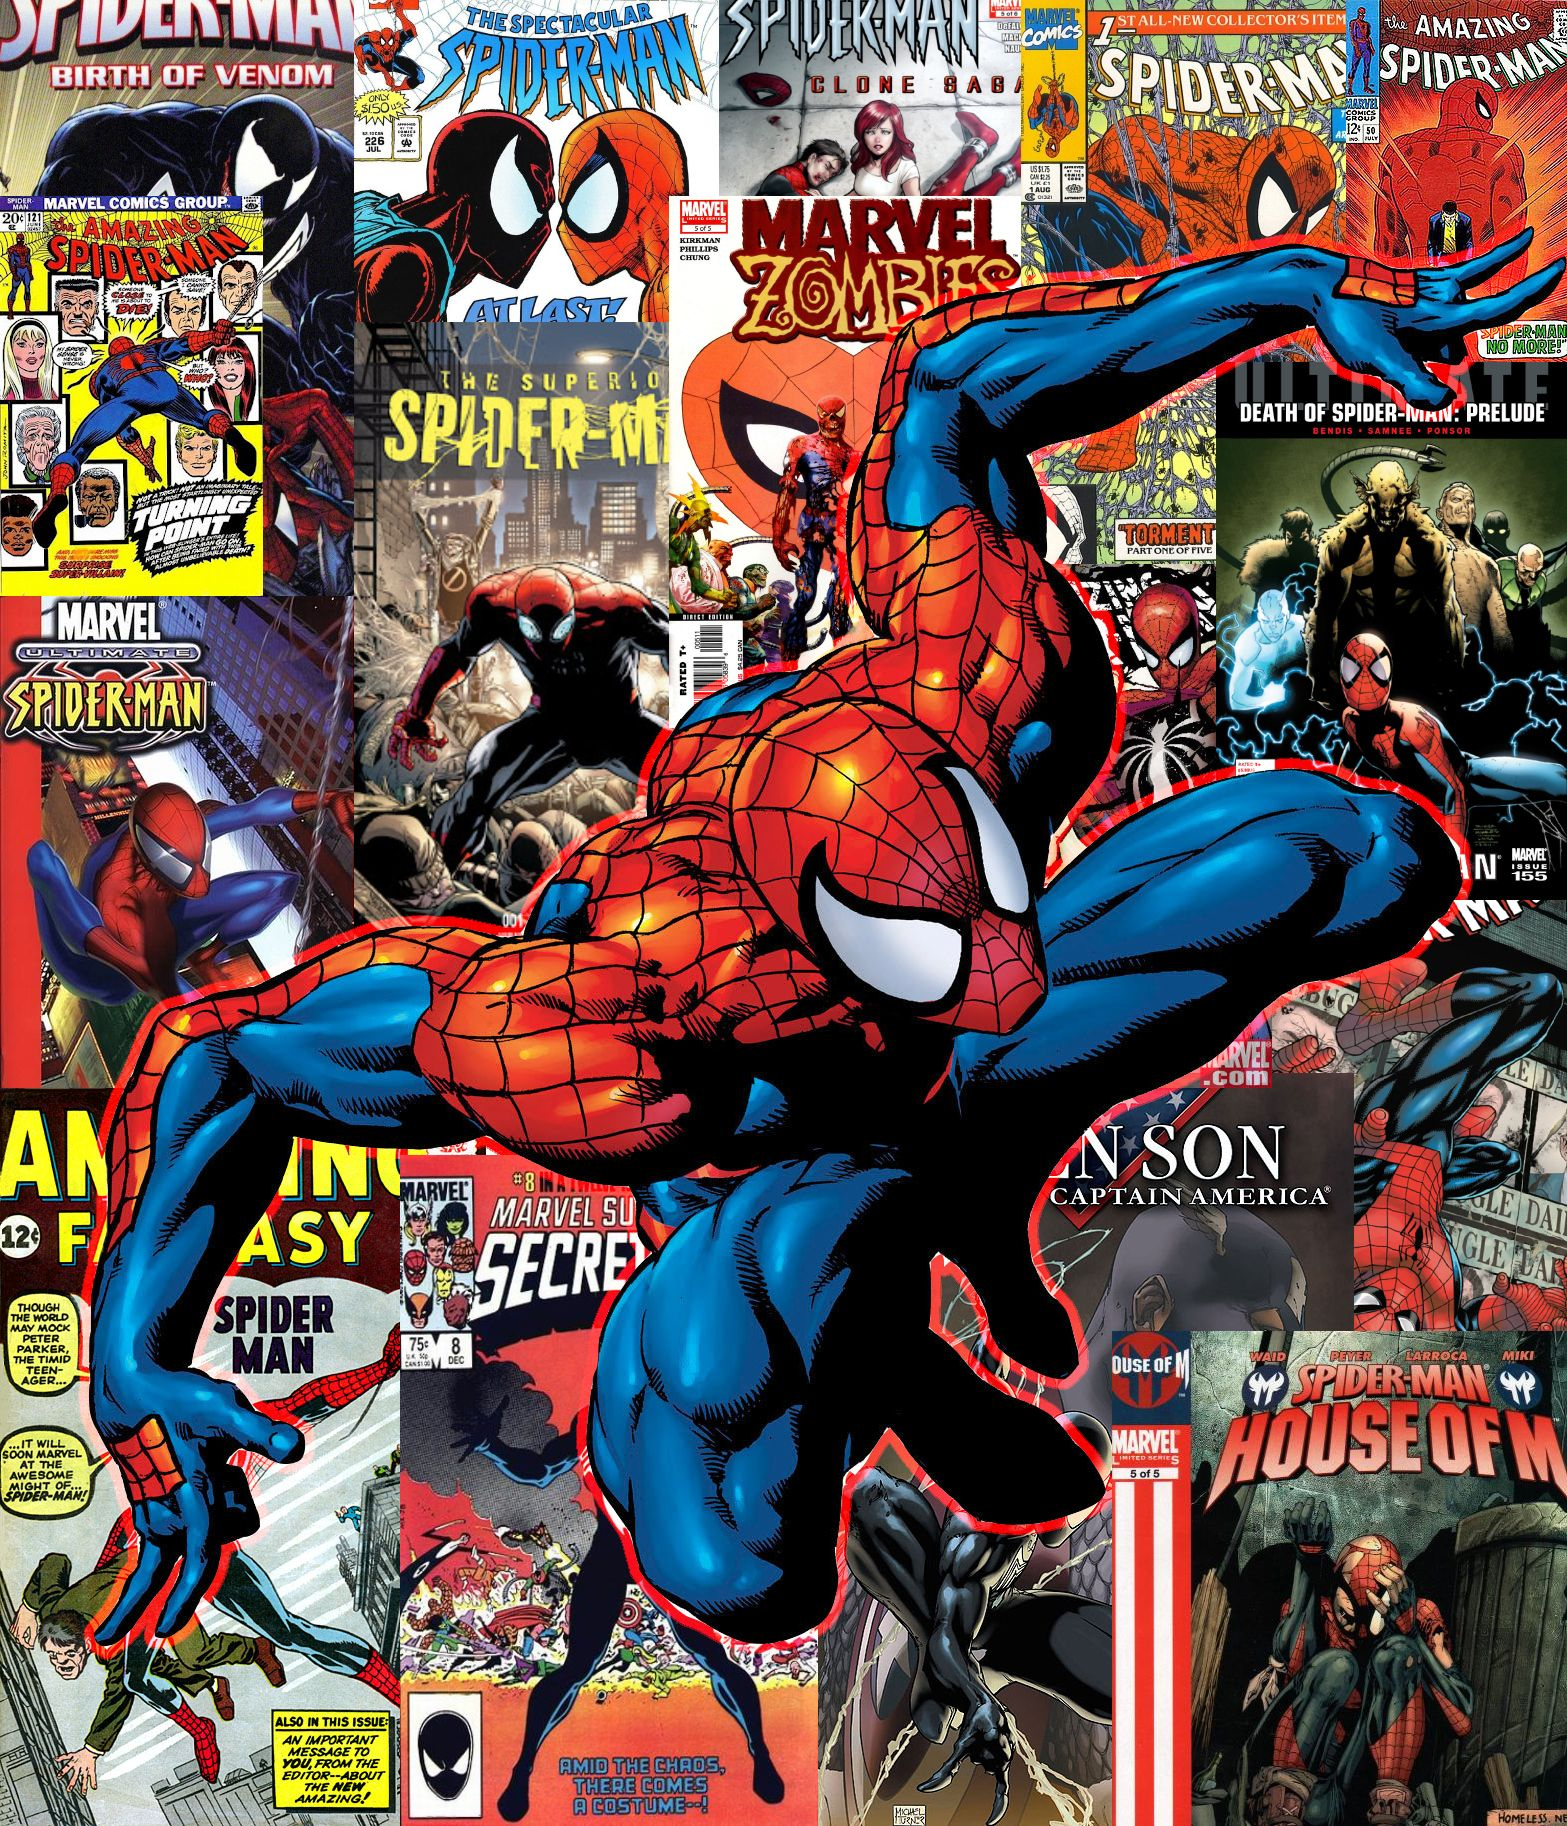 Spider Man Comicbook Cover Collection Wallpaper By Undeadpixelarmy